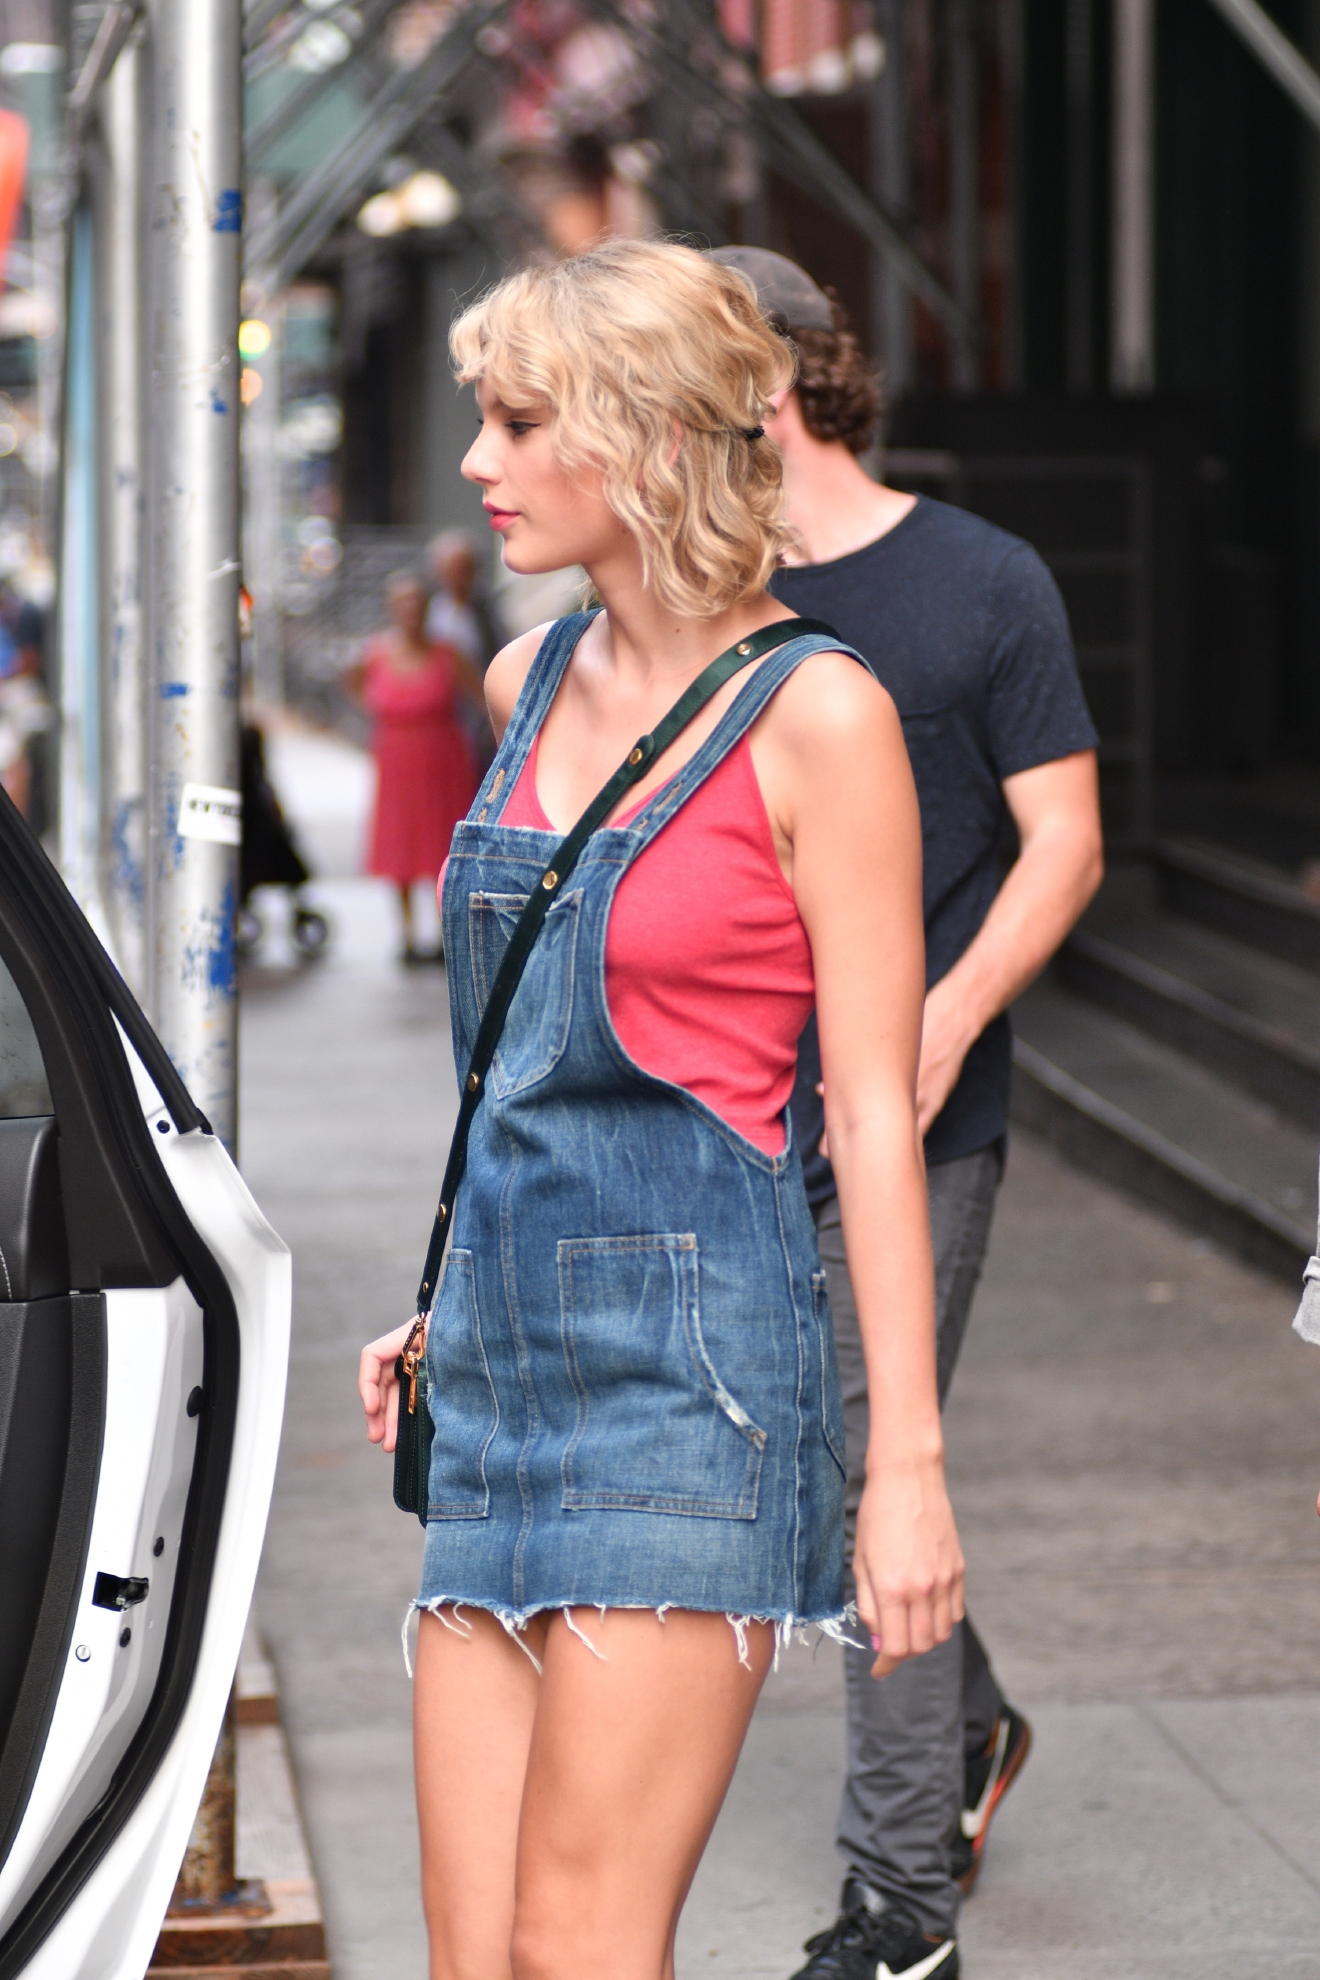 Taylor Swift leaving her apartment in New York on Aug. 8, 2016. (TNYF/WENN.com)